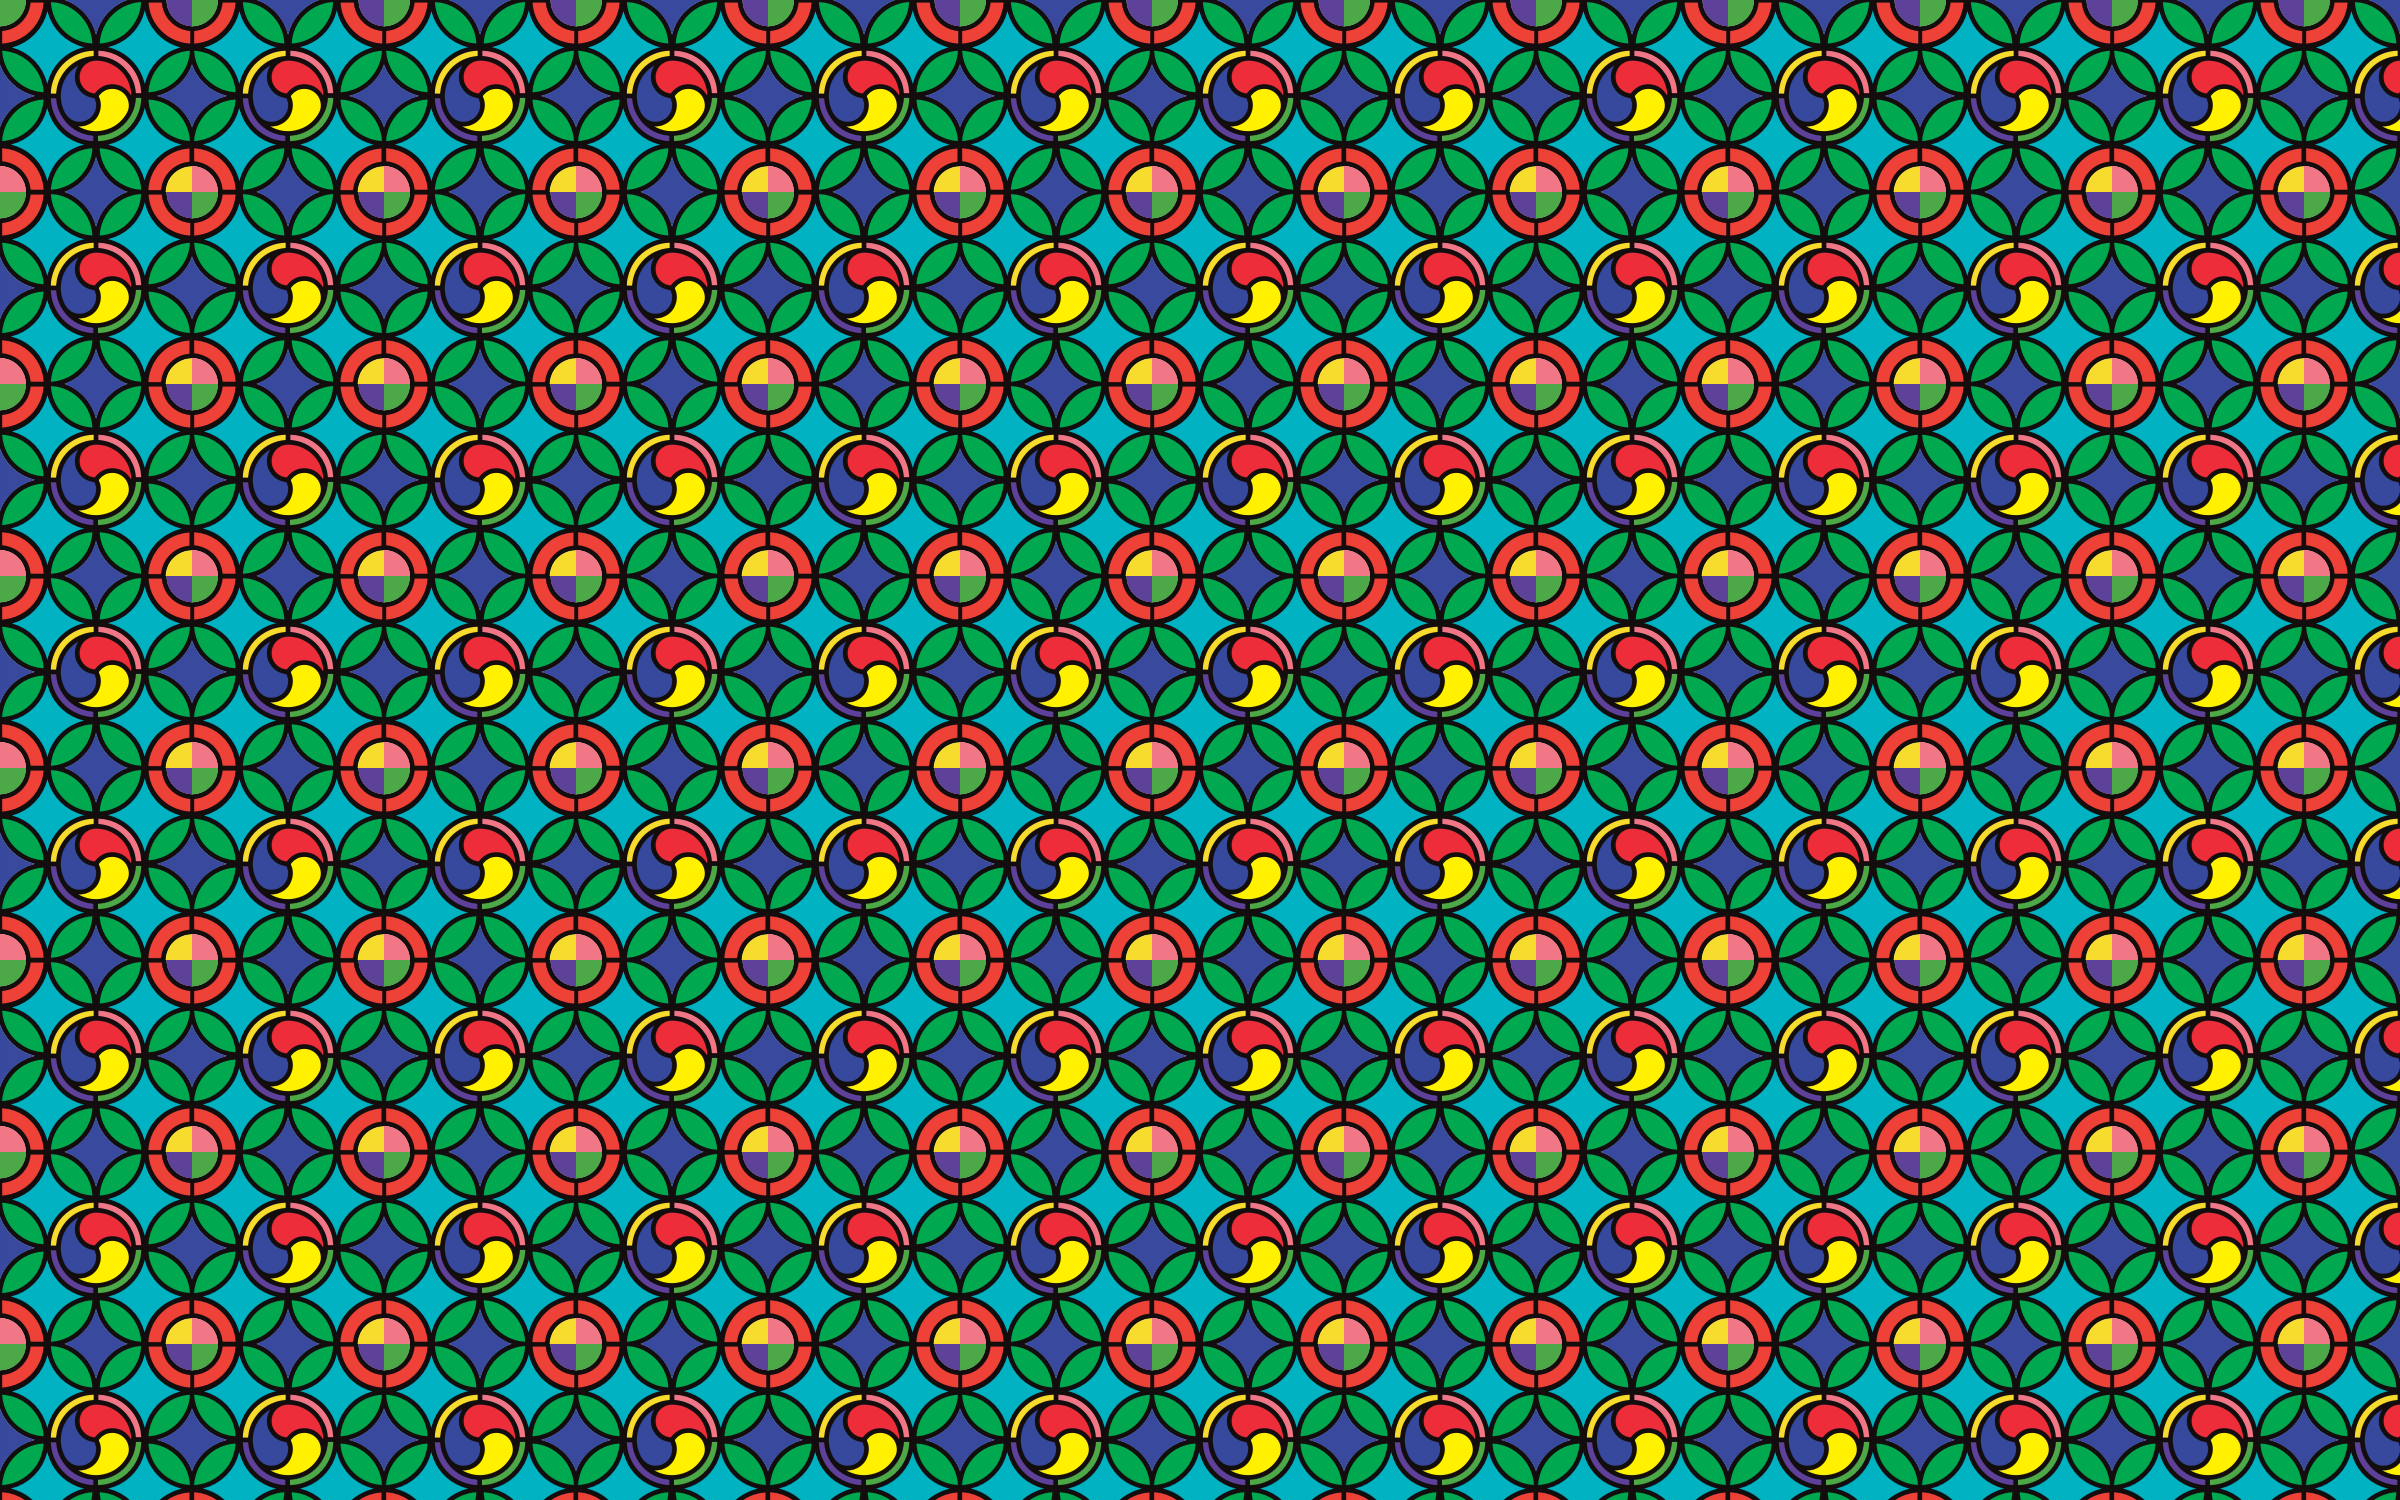 Seamless Geometrical Pattern by GDJ